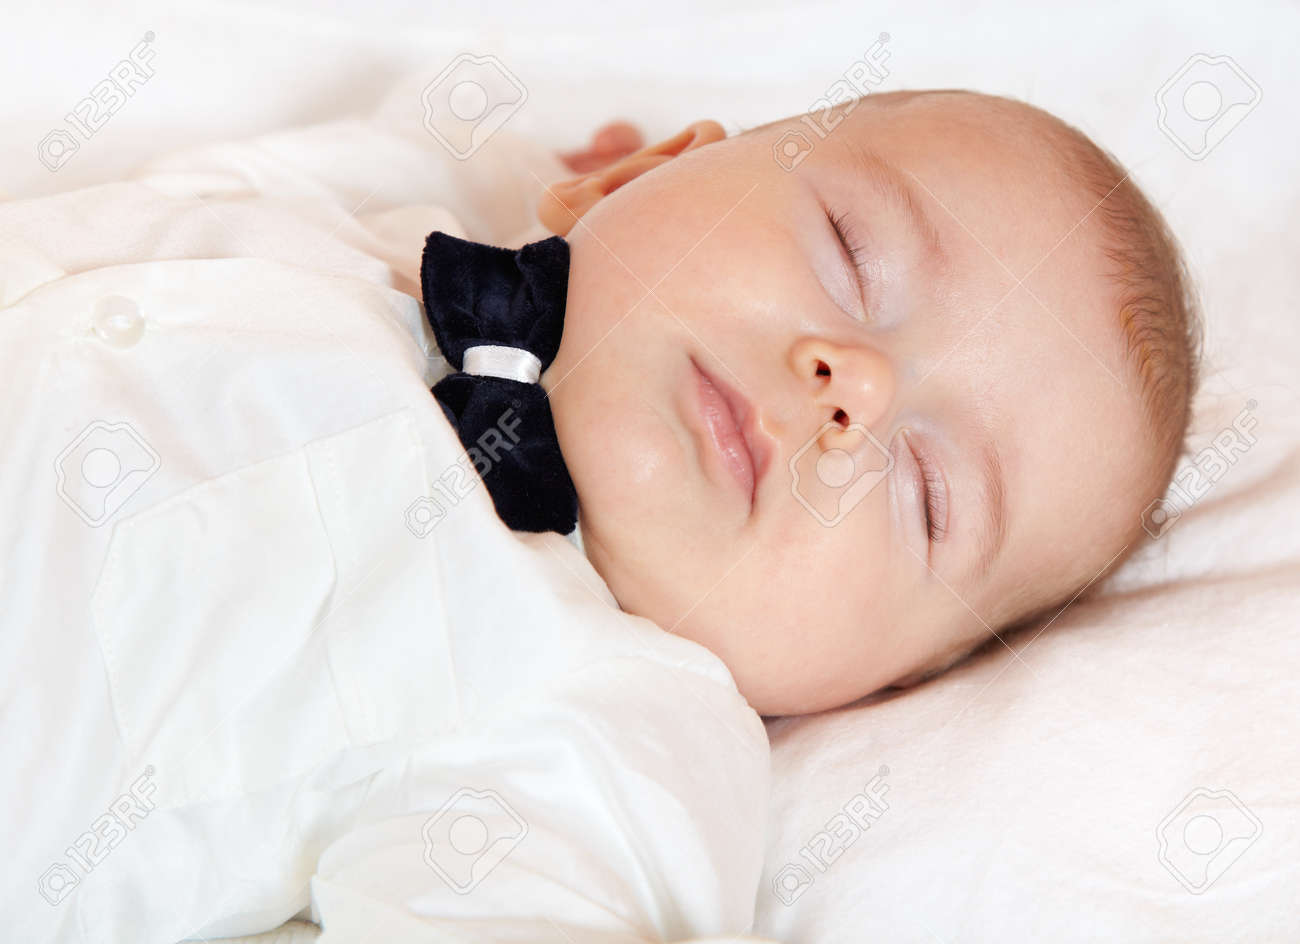 Baby boy dressed for party sleeping peacefully. Stock Photo - 17501237